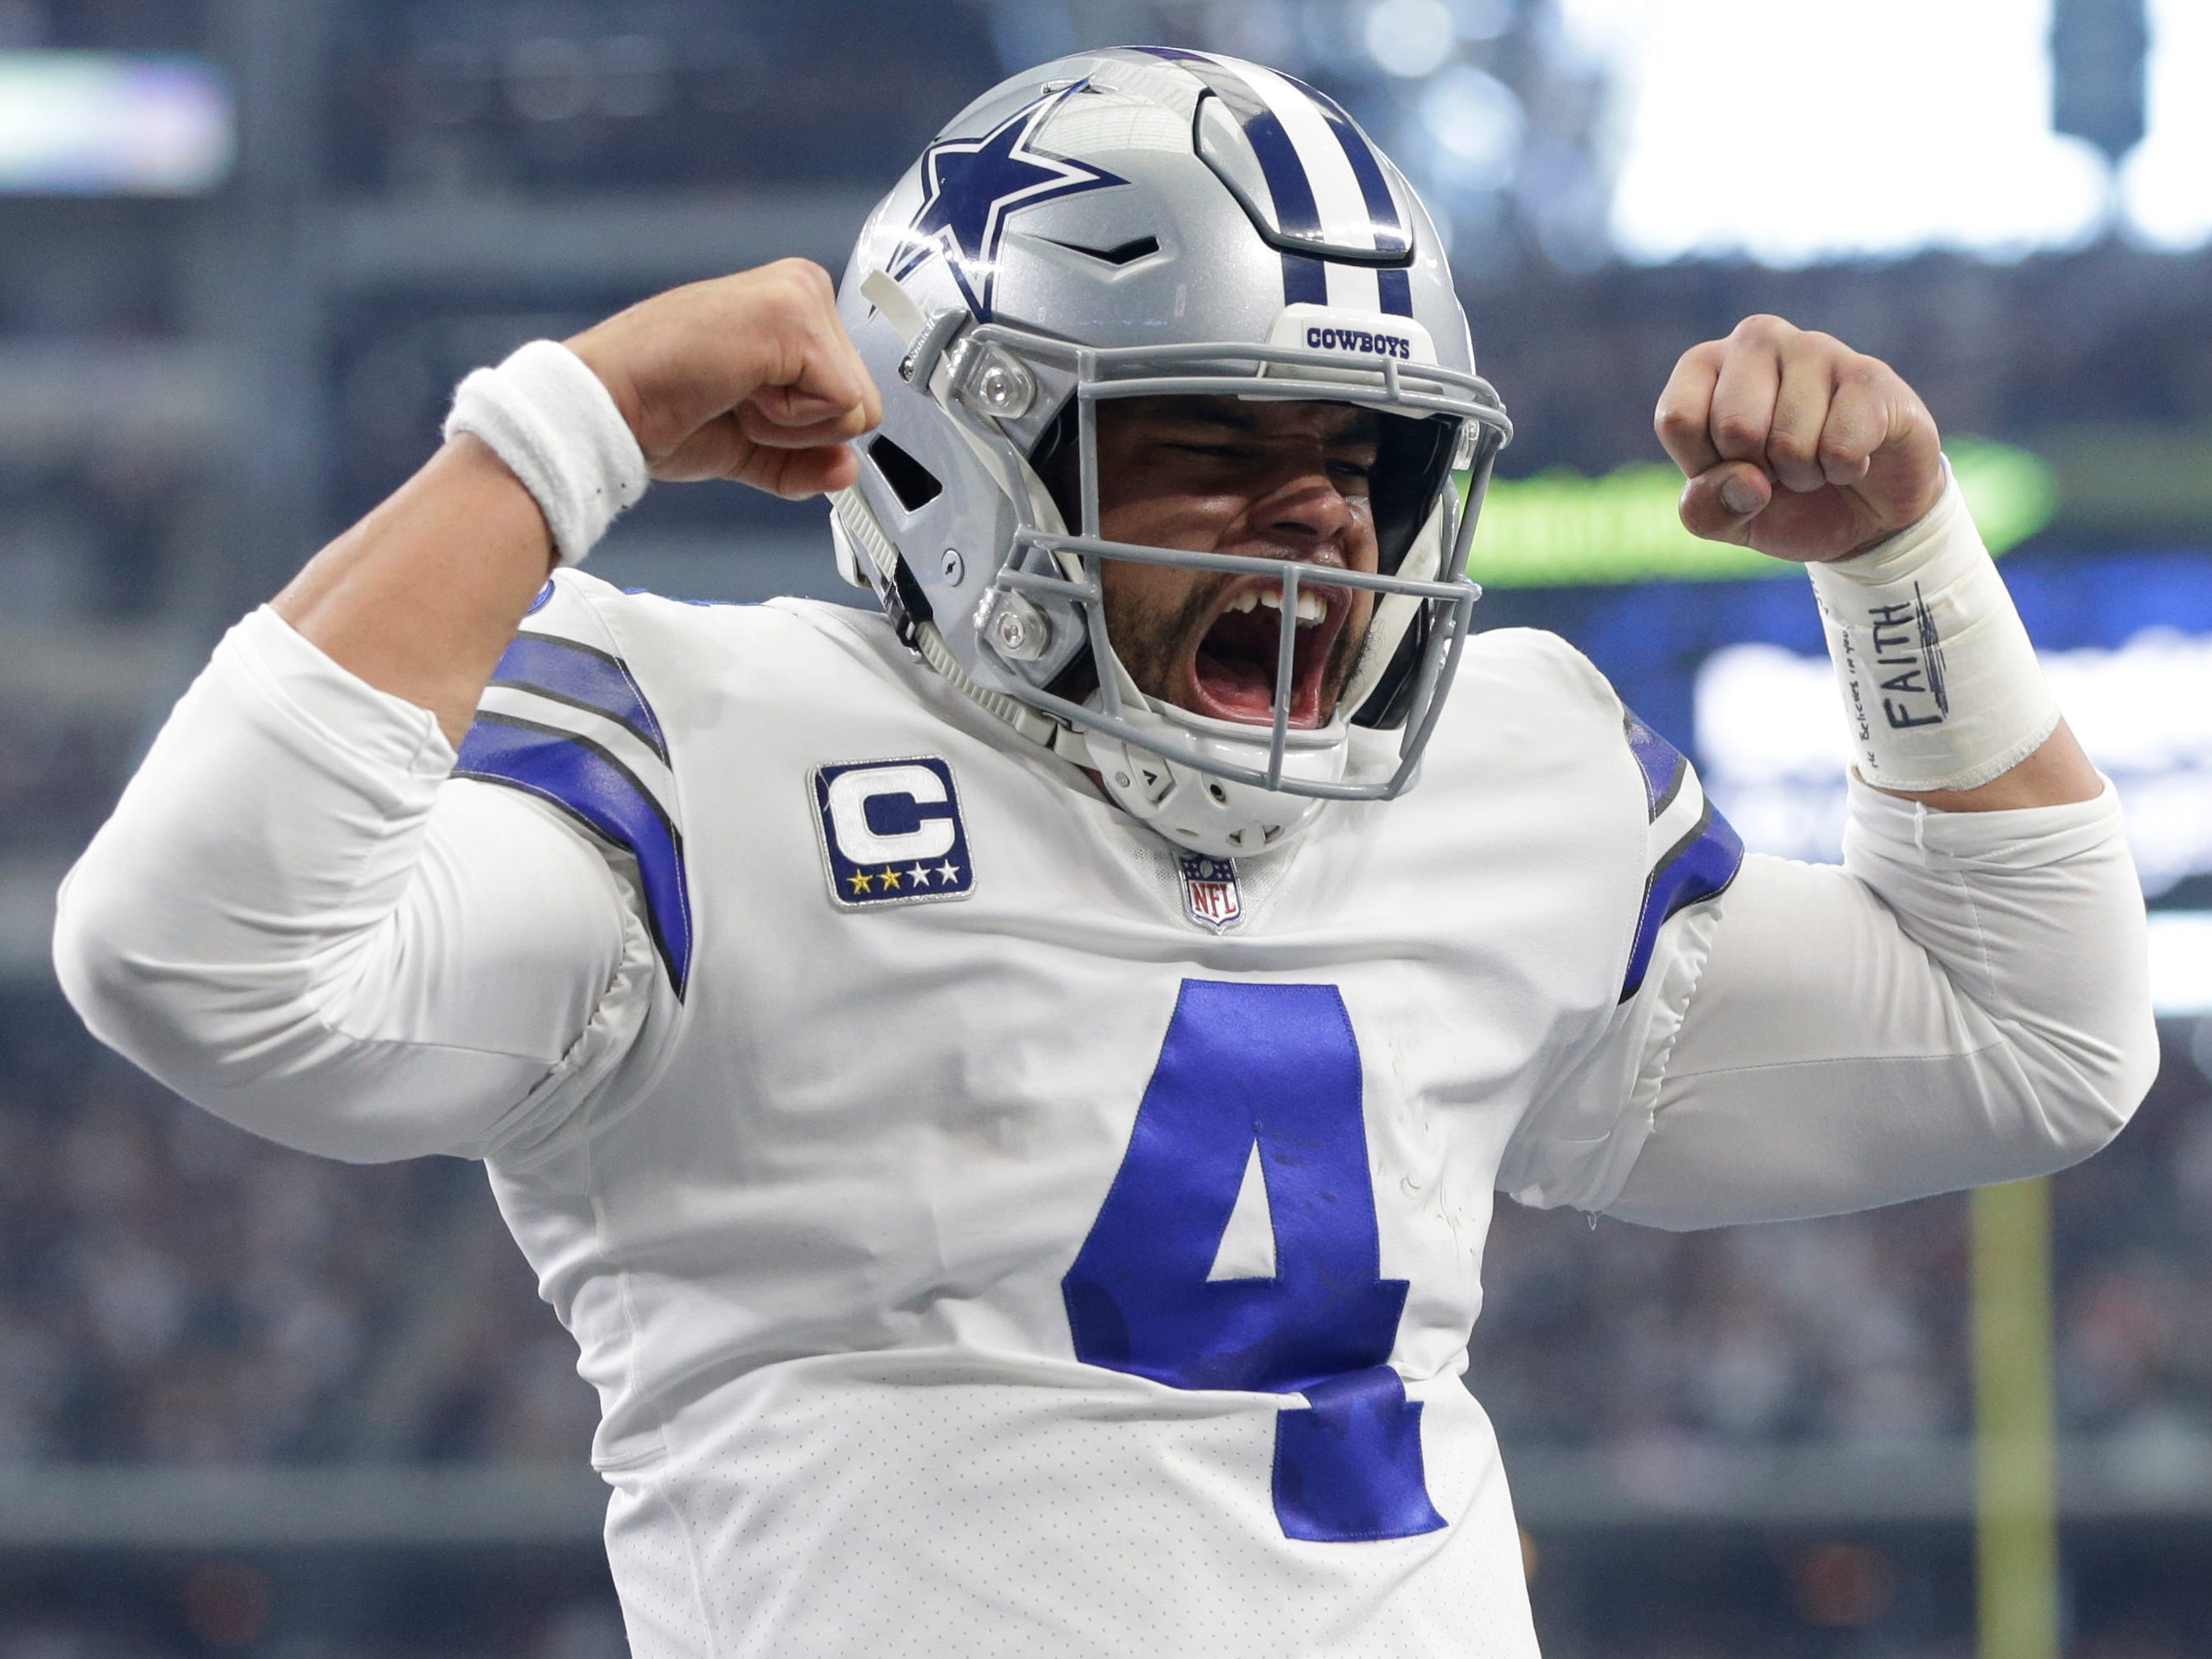 Week 16: Dallas Cowboys quarterback Dak Prescott reacts after running for a  touchdown against the Tampa Bay Buccaneers at AT&T Stadium. The Cowboys won the game, 27-20.